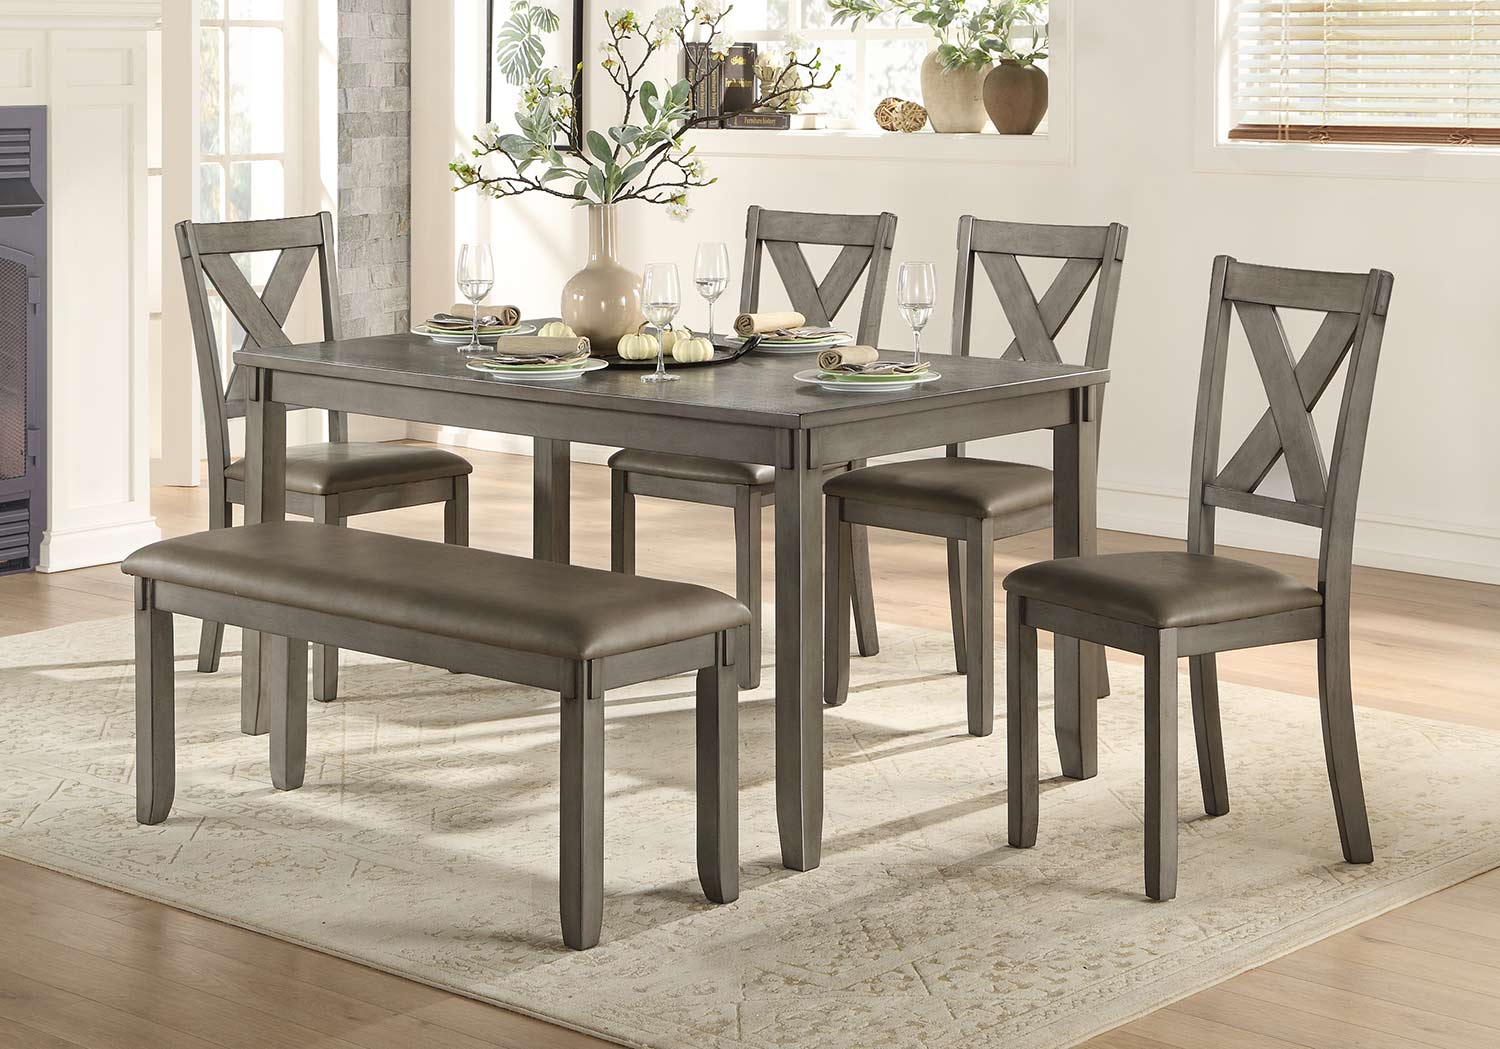 Homelegance Holders 6-Piece Pack Dinette Set - Bench: 46 x 16 x 19H